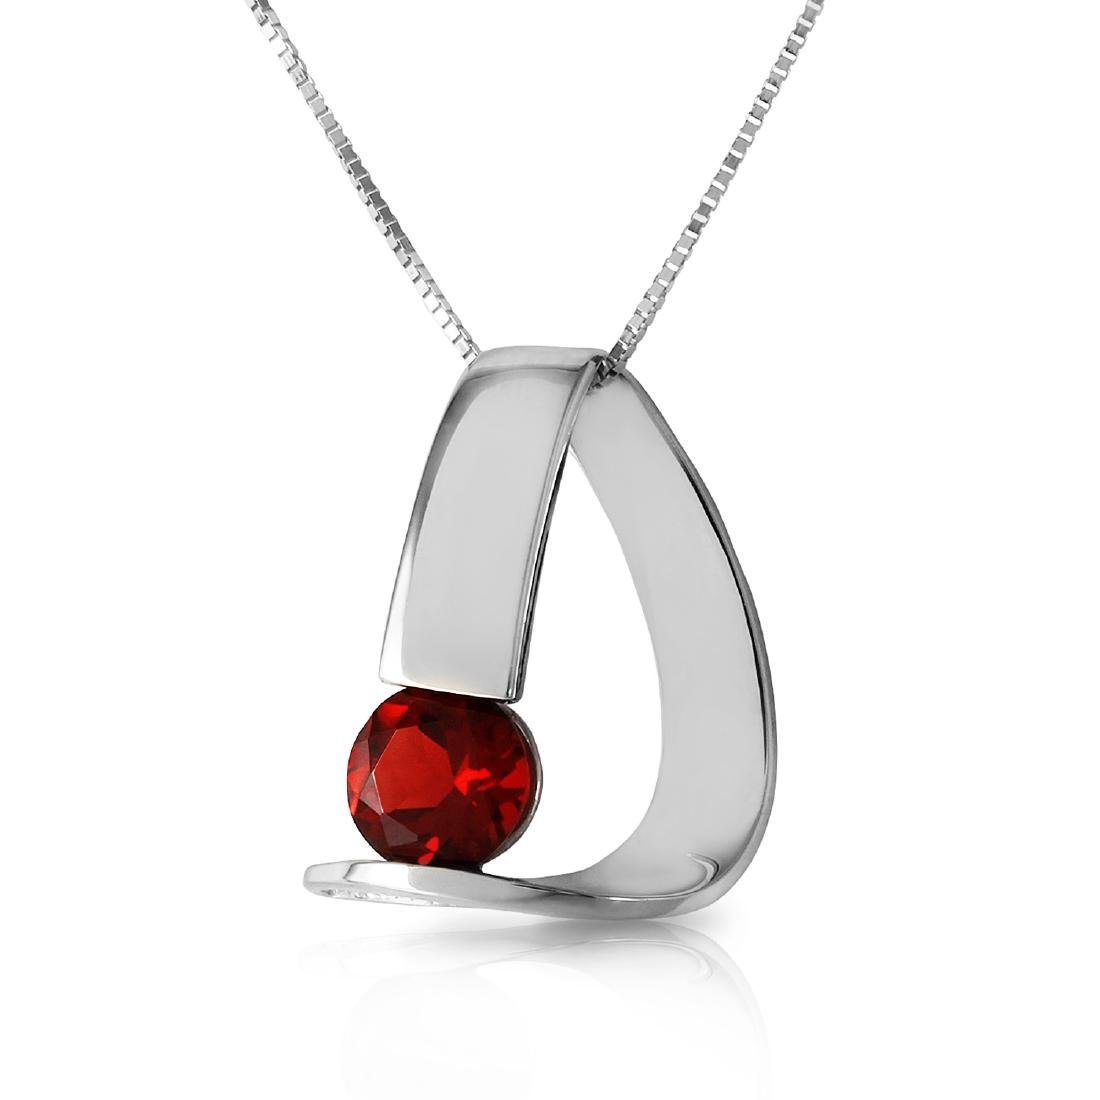 Genuine 1 ctw Garnet Necklace Jewelry 14KT White Gold -